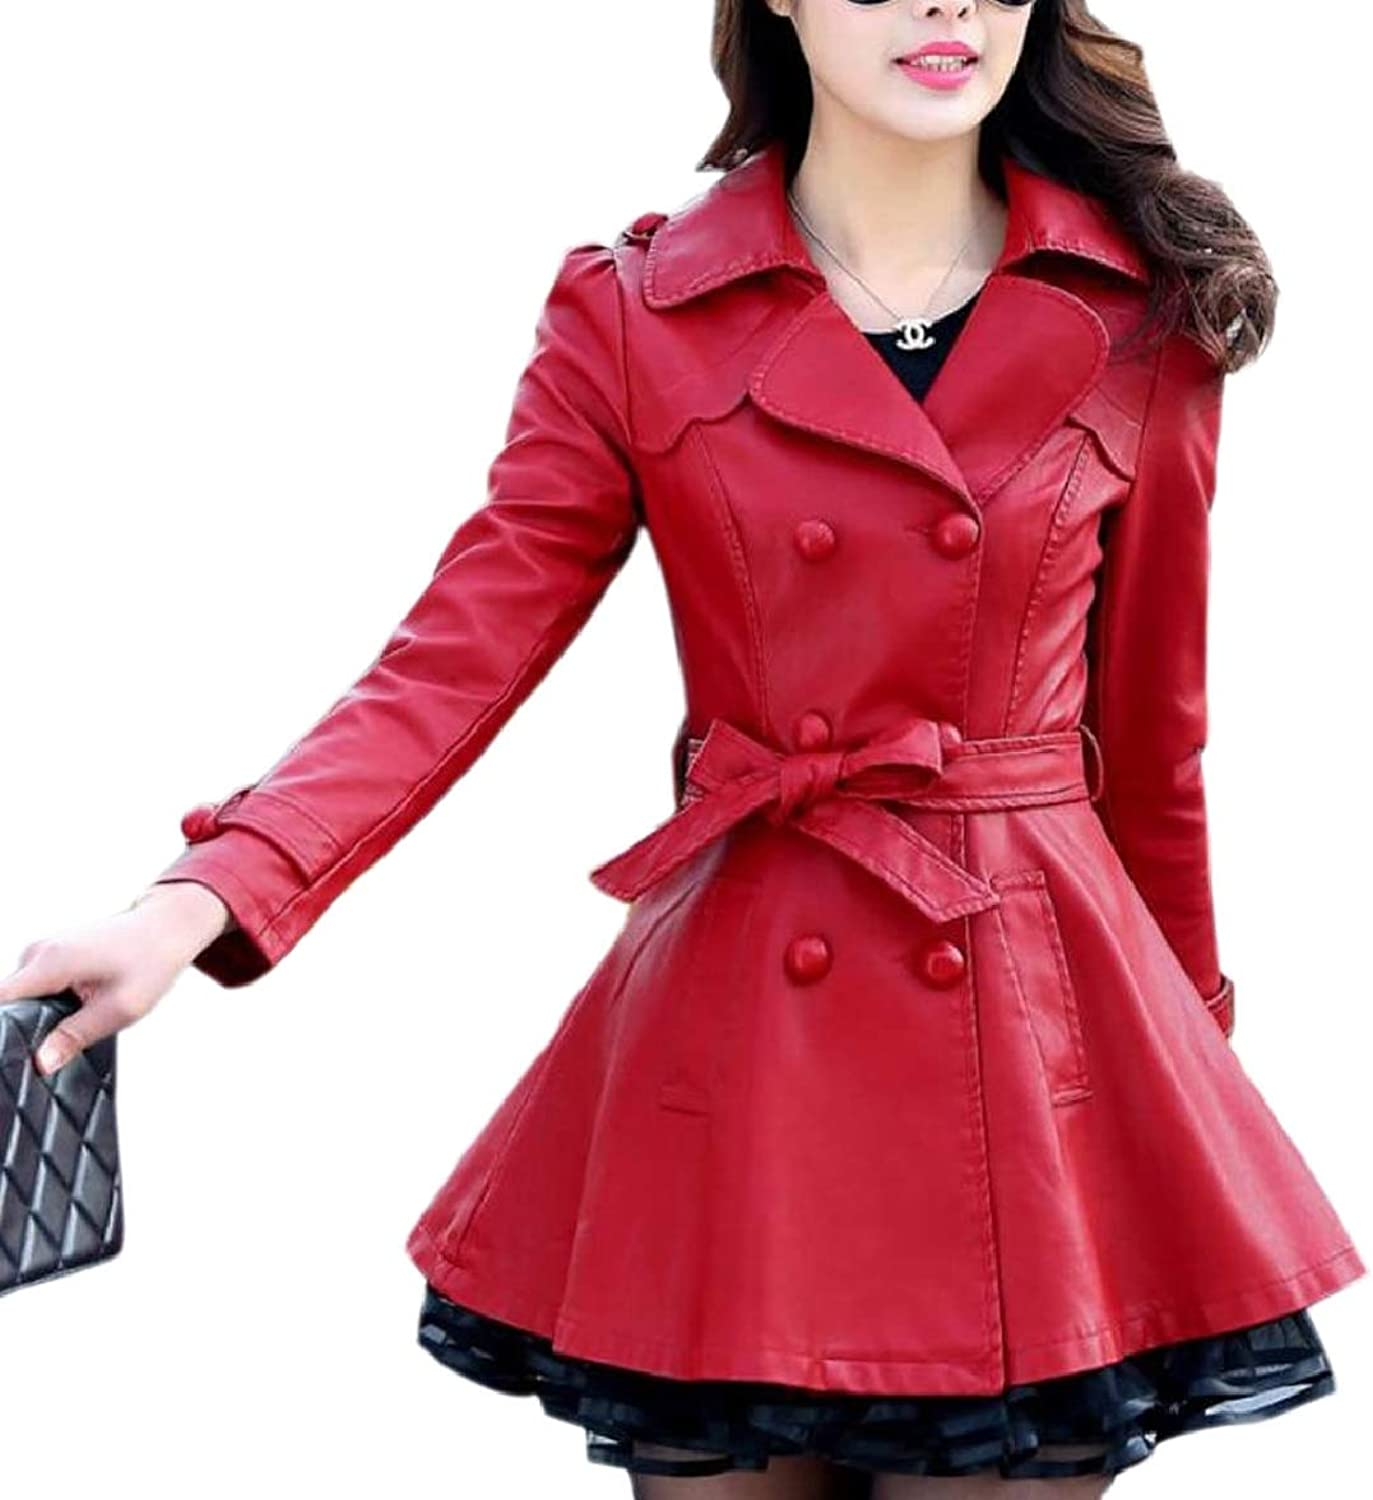 SmeilingCA Women Double Breasted Trench Dress Coat Retro PU Leather Lapel Overcoat